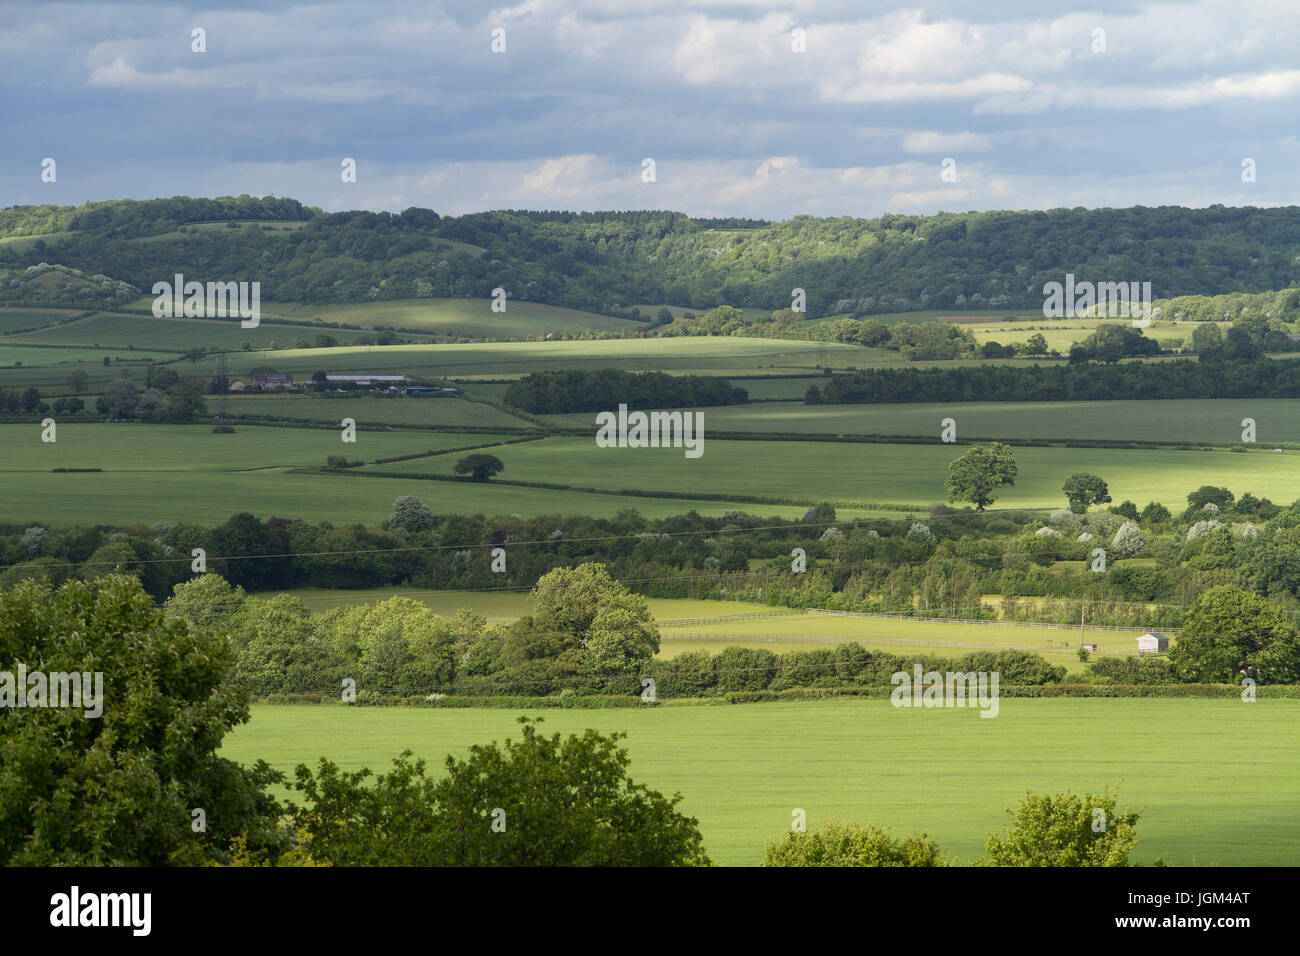 The view from Lodge Hill near Saunderton looking over the Chiltern Hills in Buckinghamshire. - Stock Image